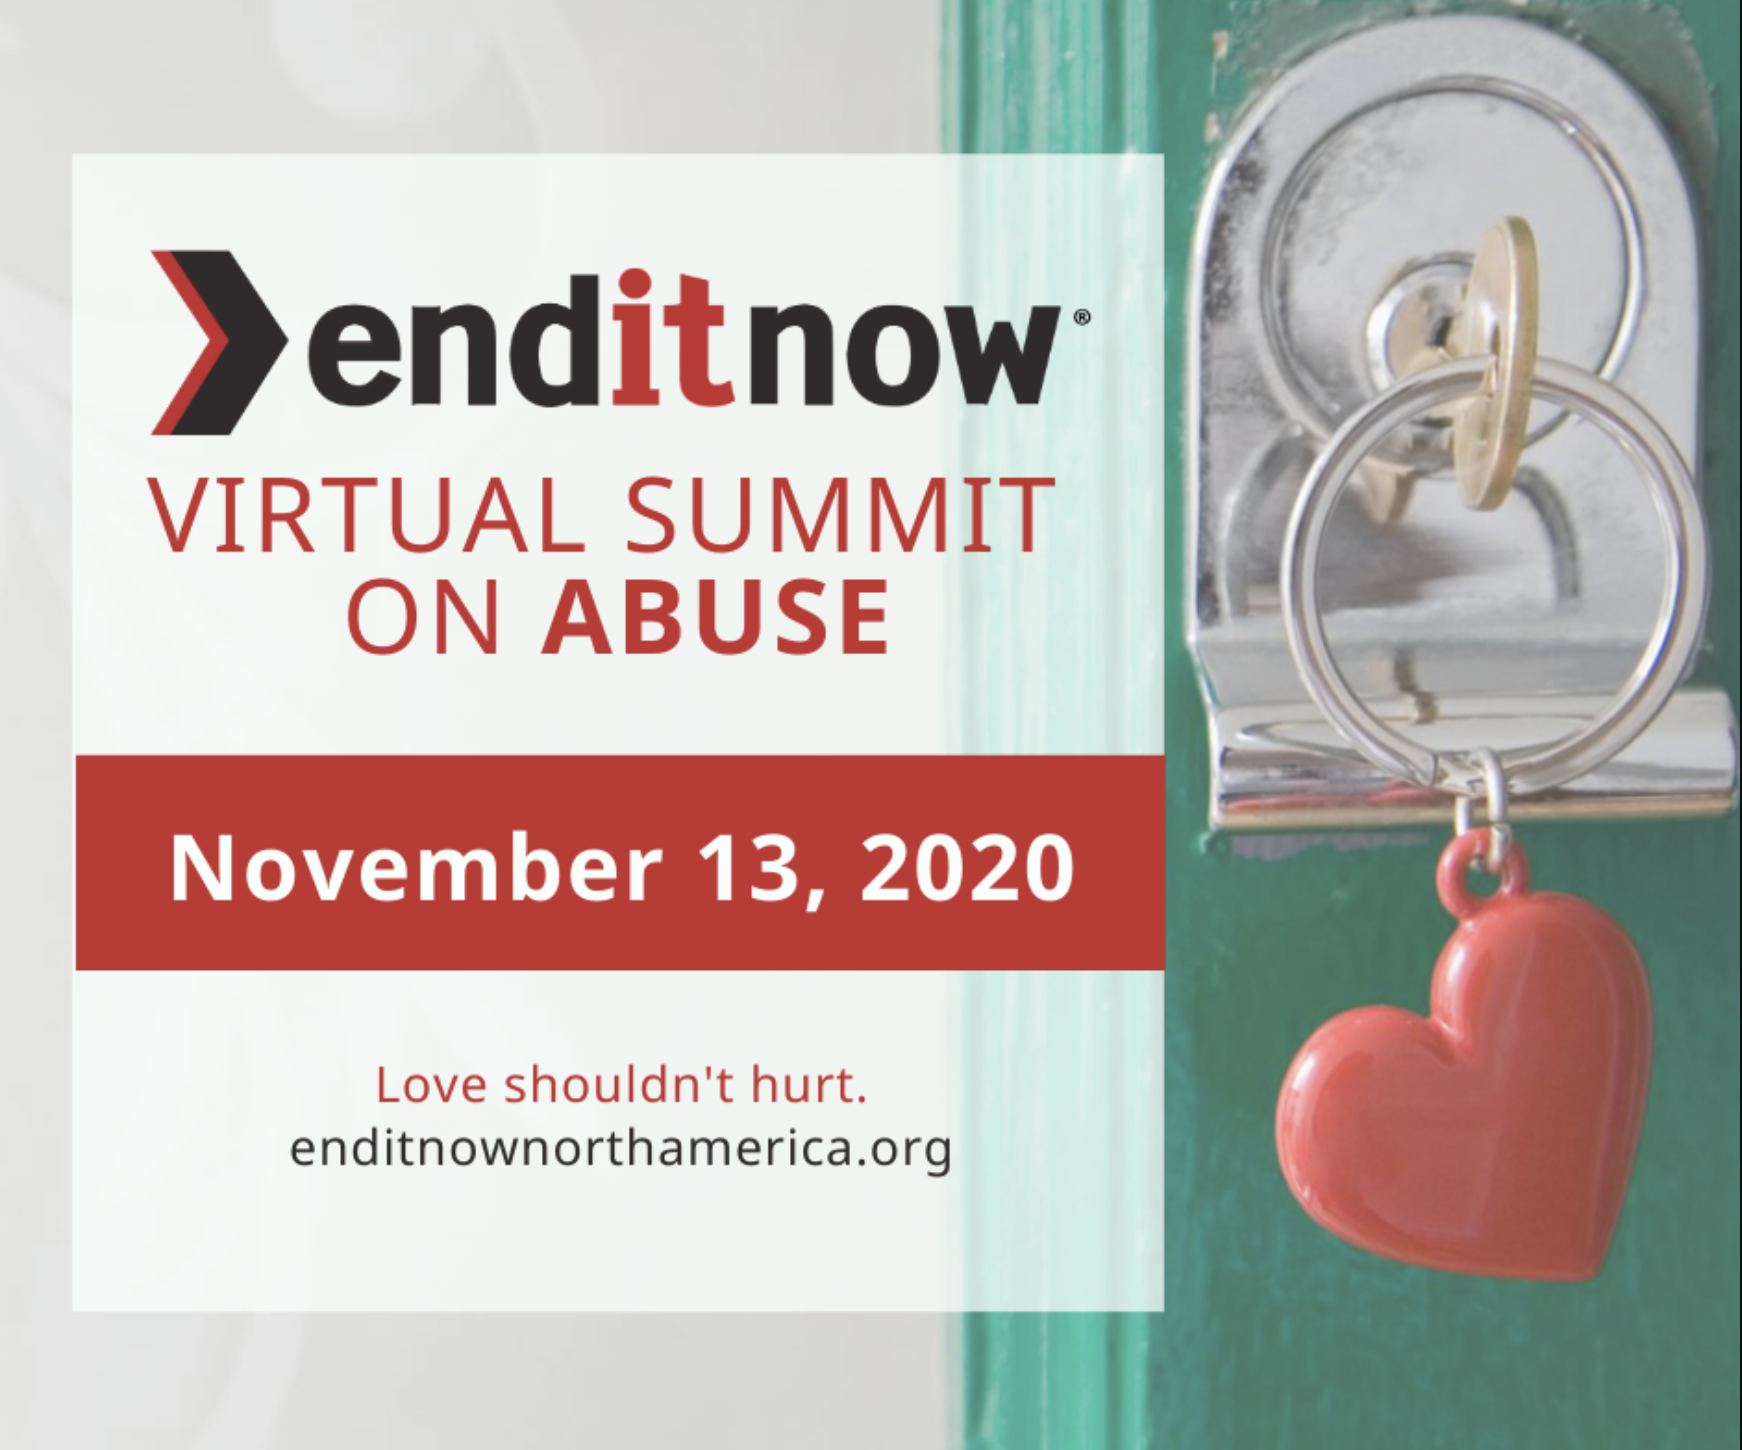 2020 enditnow Virtual Summit on Abuse